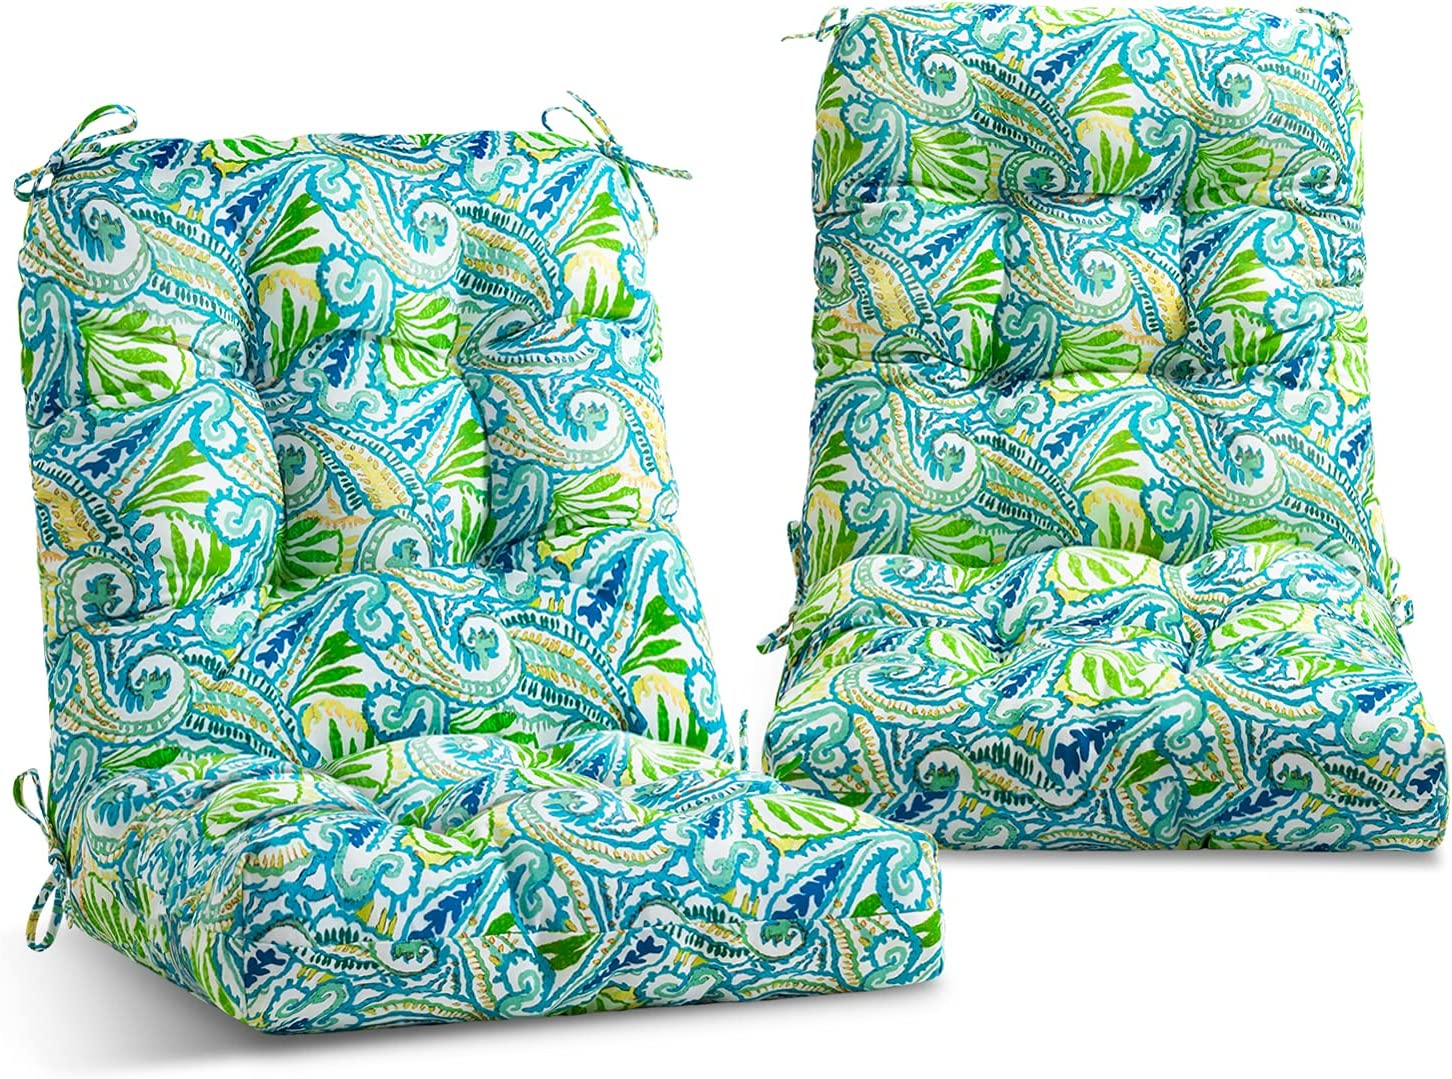 EAGLE PEAK Tufted Outdoor/Indoor Seat/Back Chair Cushion, Set of 2, 42'' x 21'', Blue Paisley